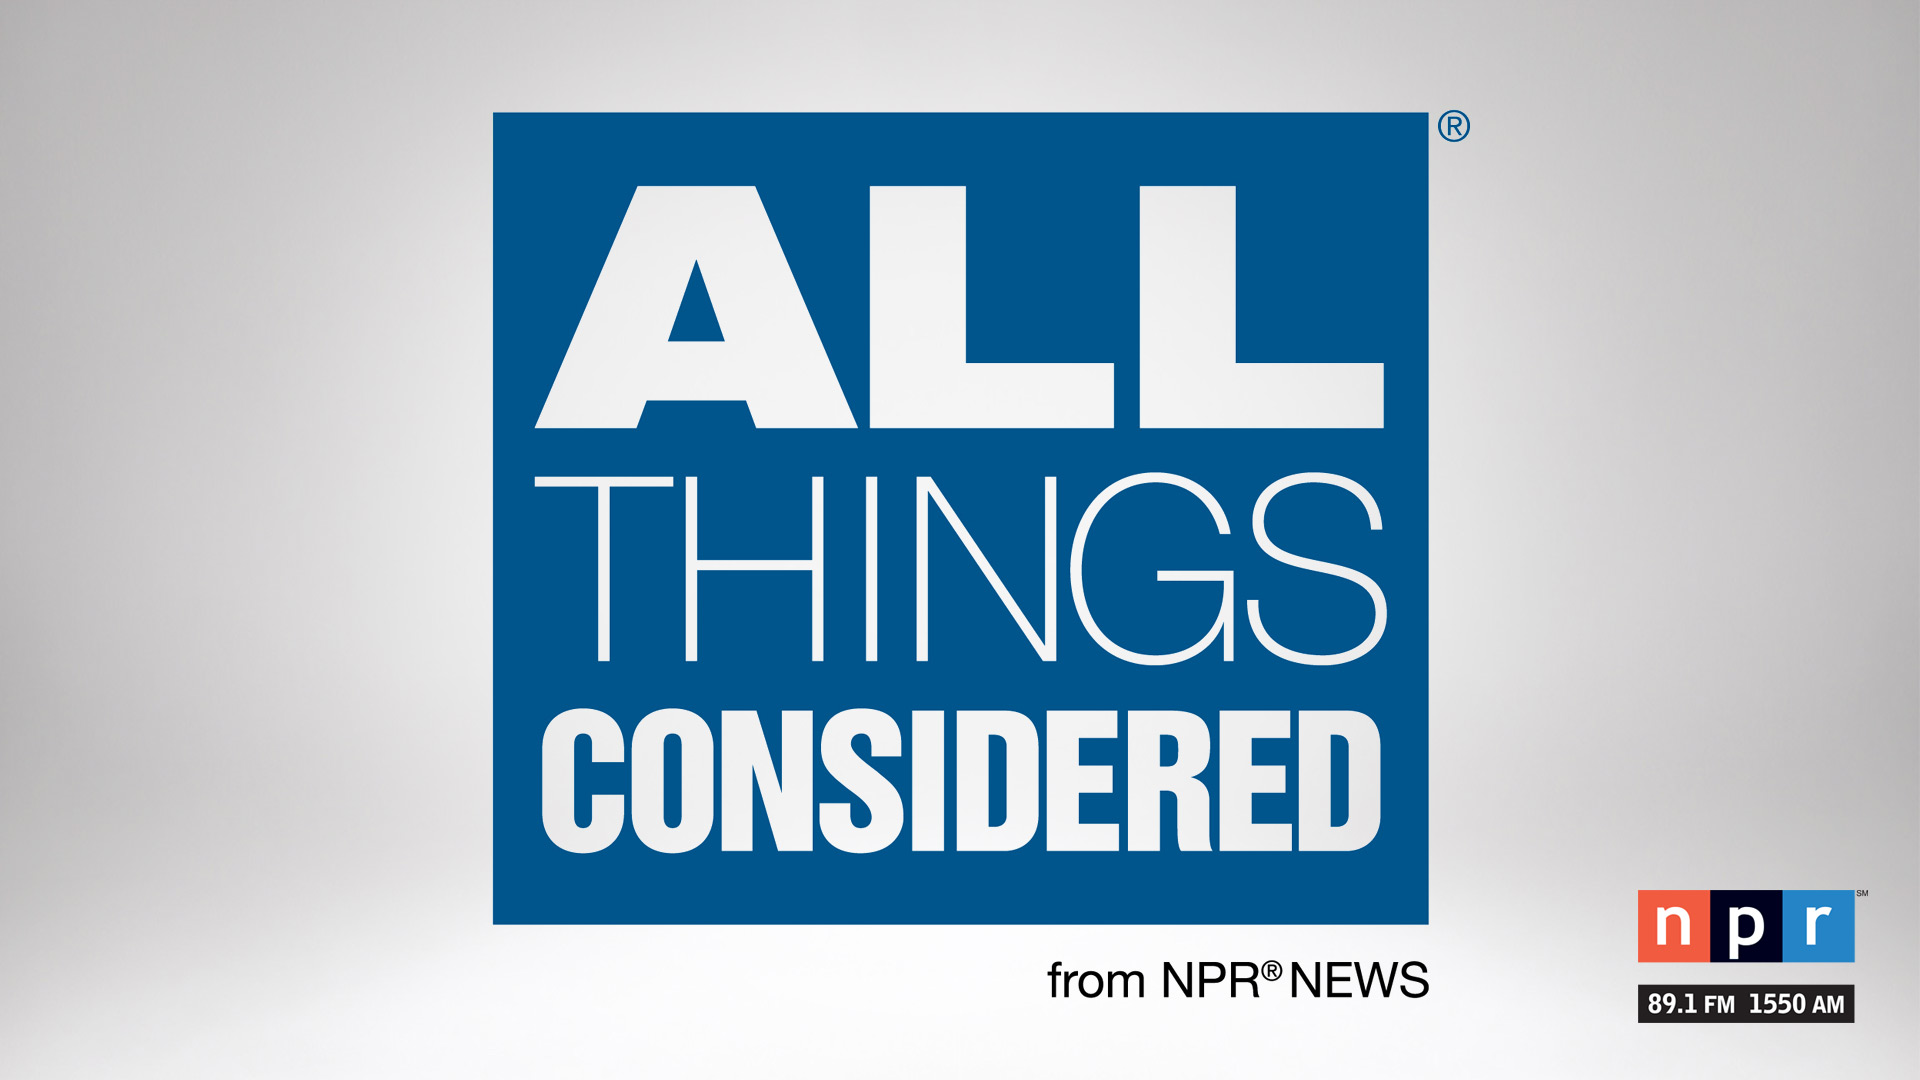 All Things Considered airs weekdays on NPR 89.1.